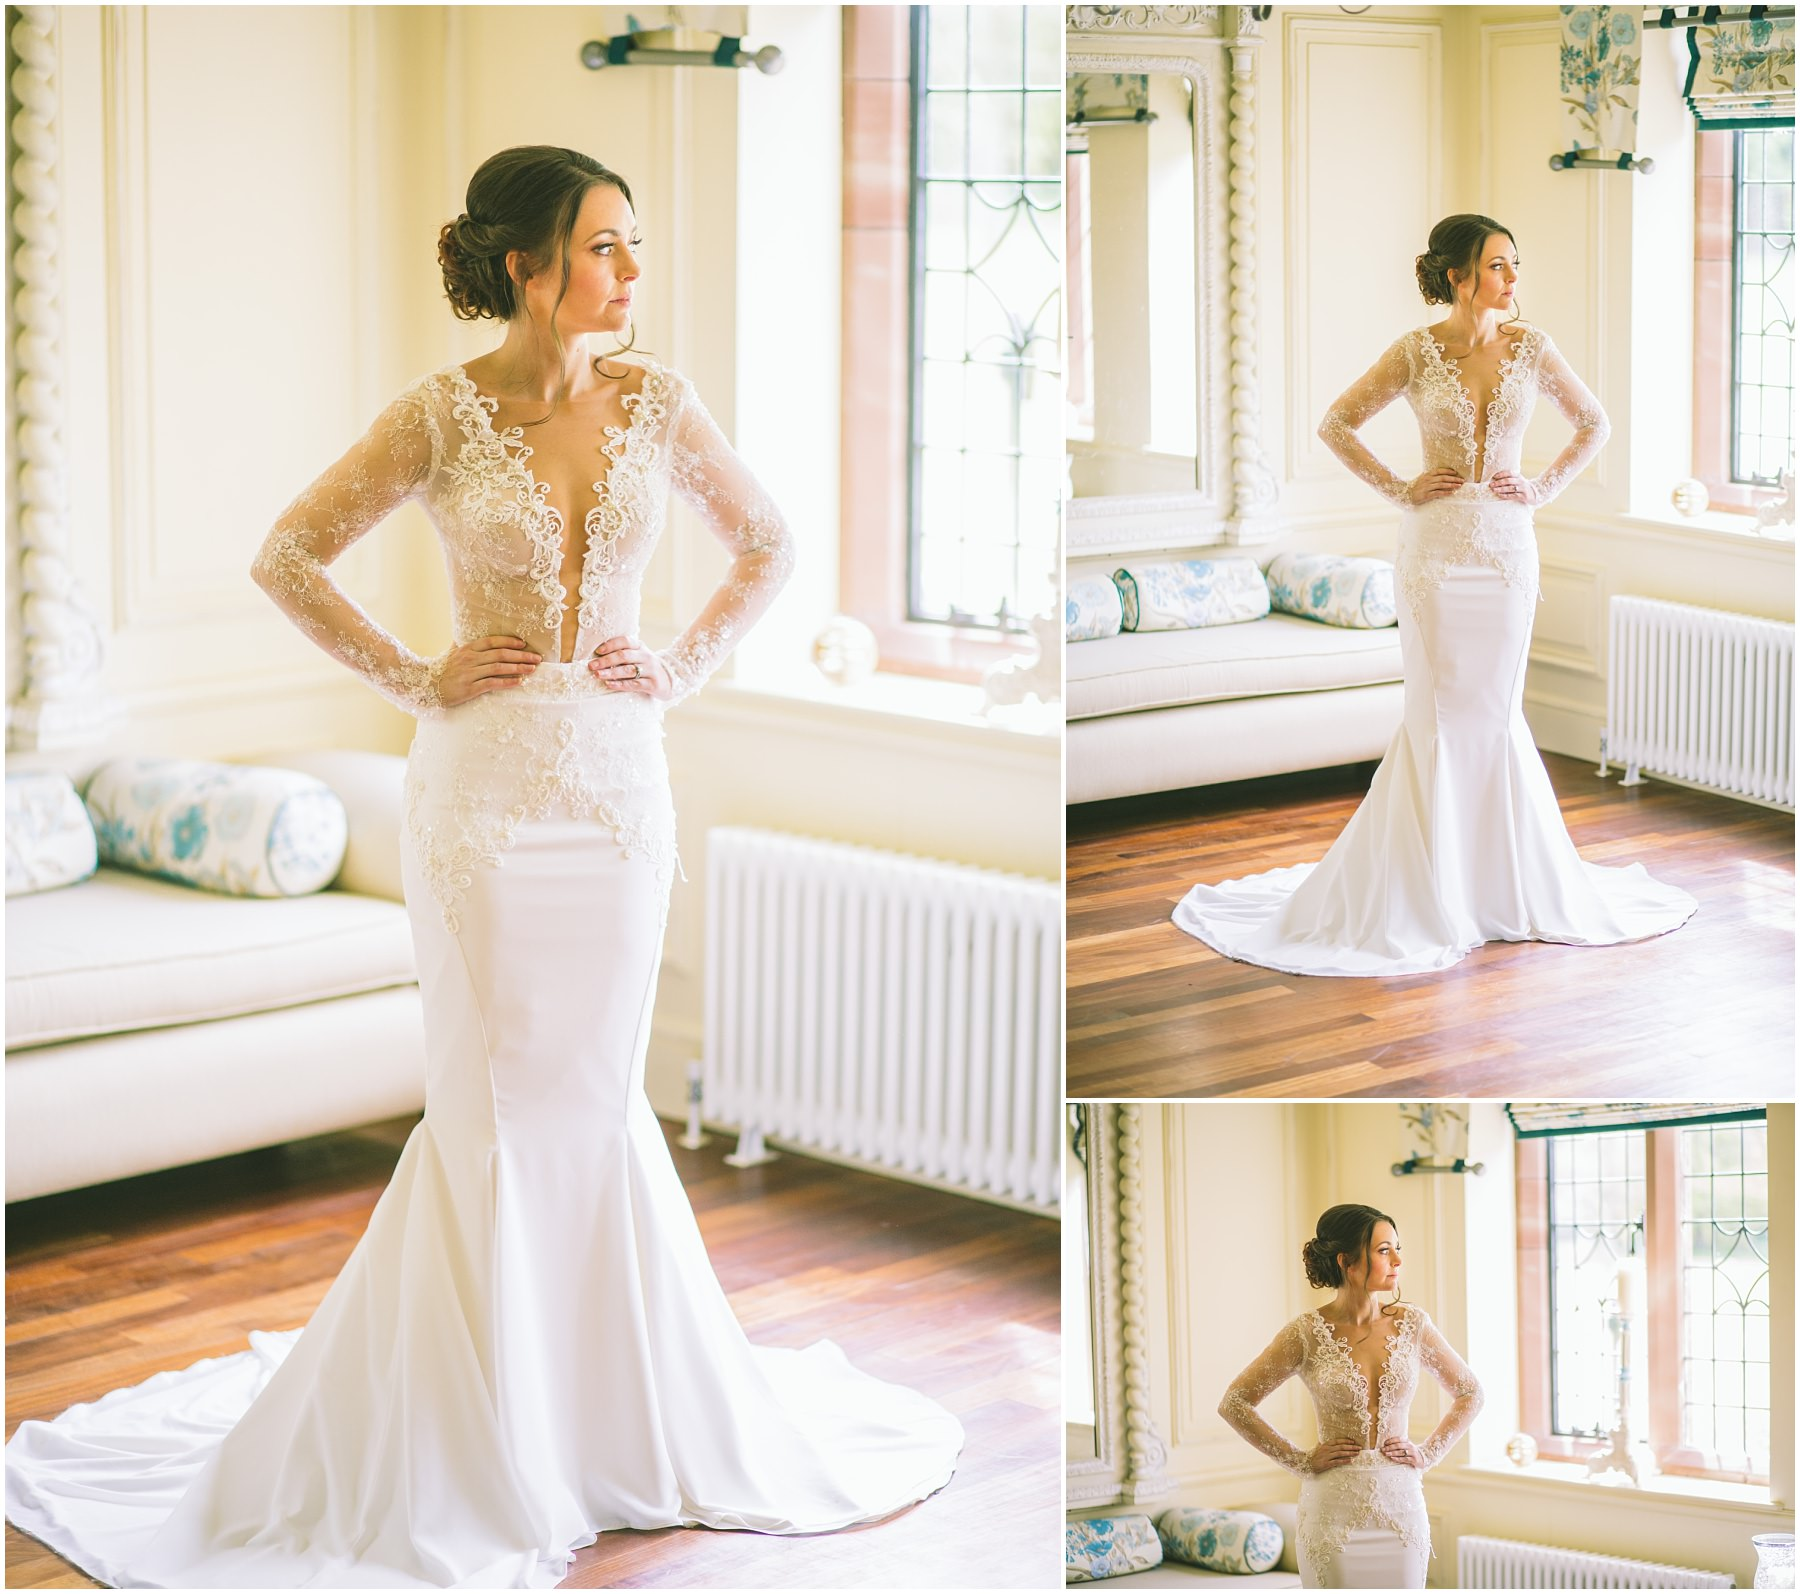 Berta Bridal dress at the stunning Colshaw Hall